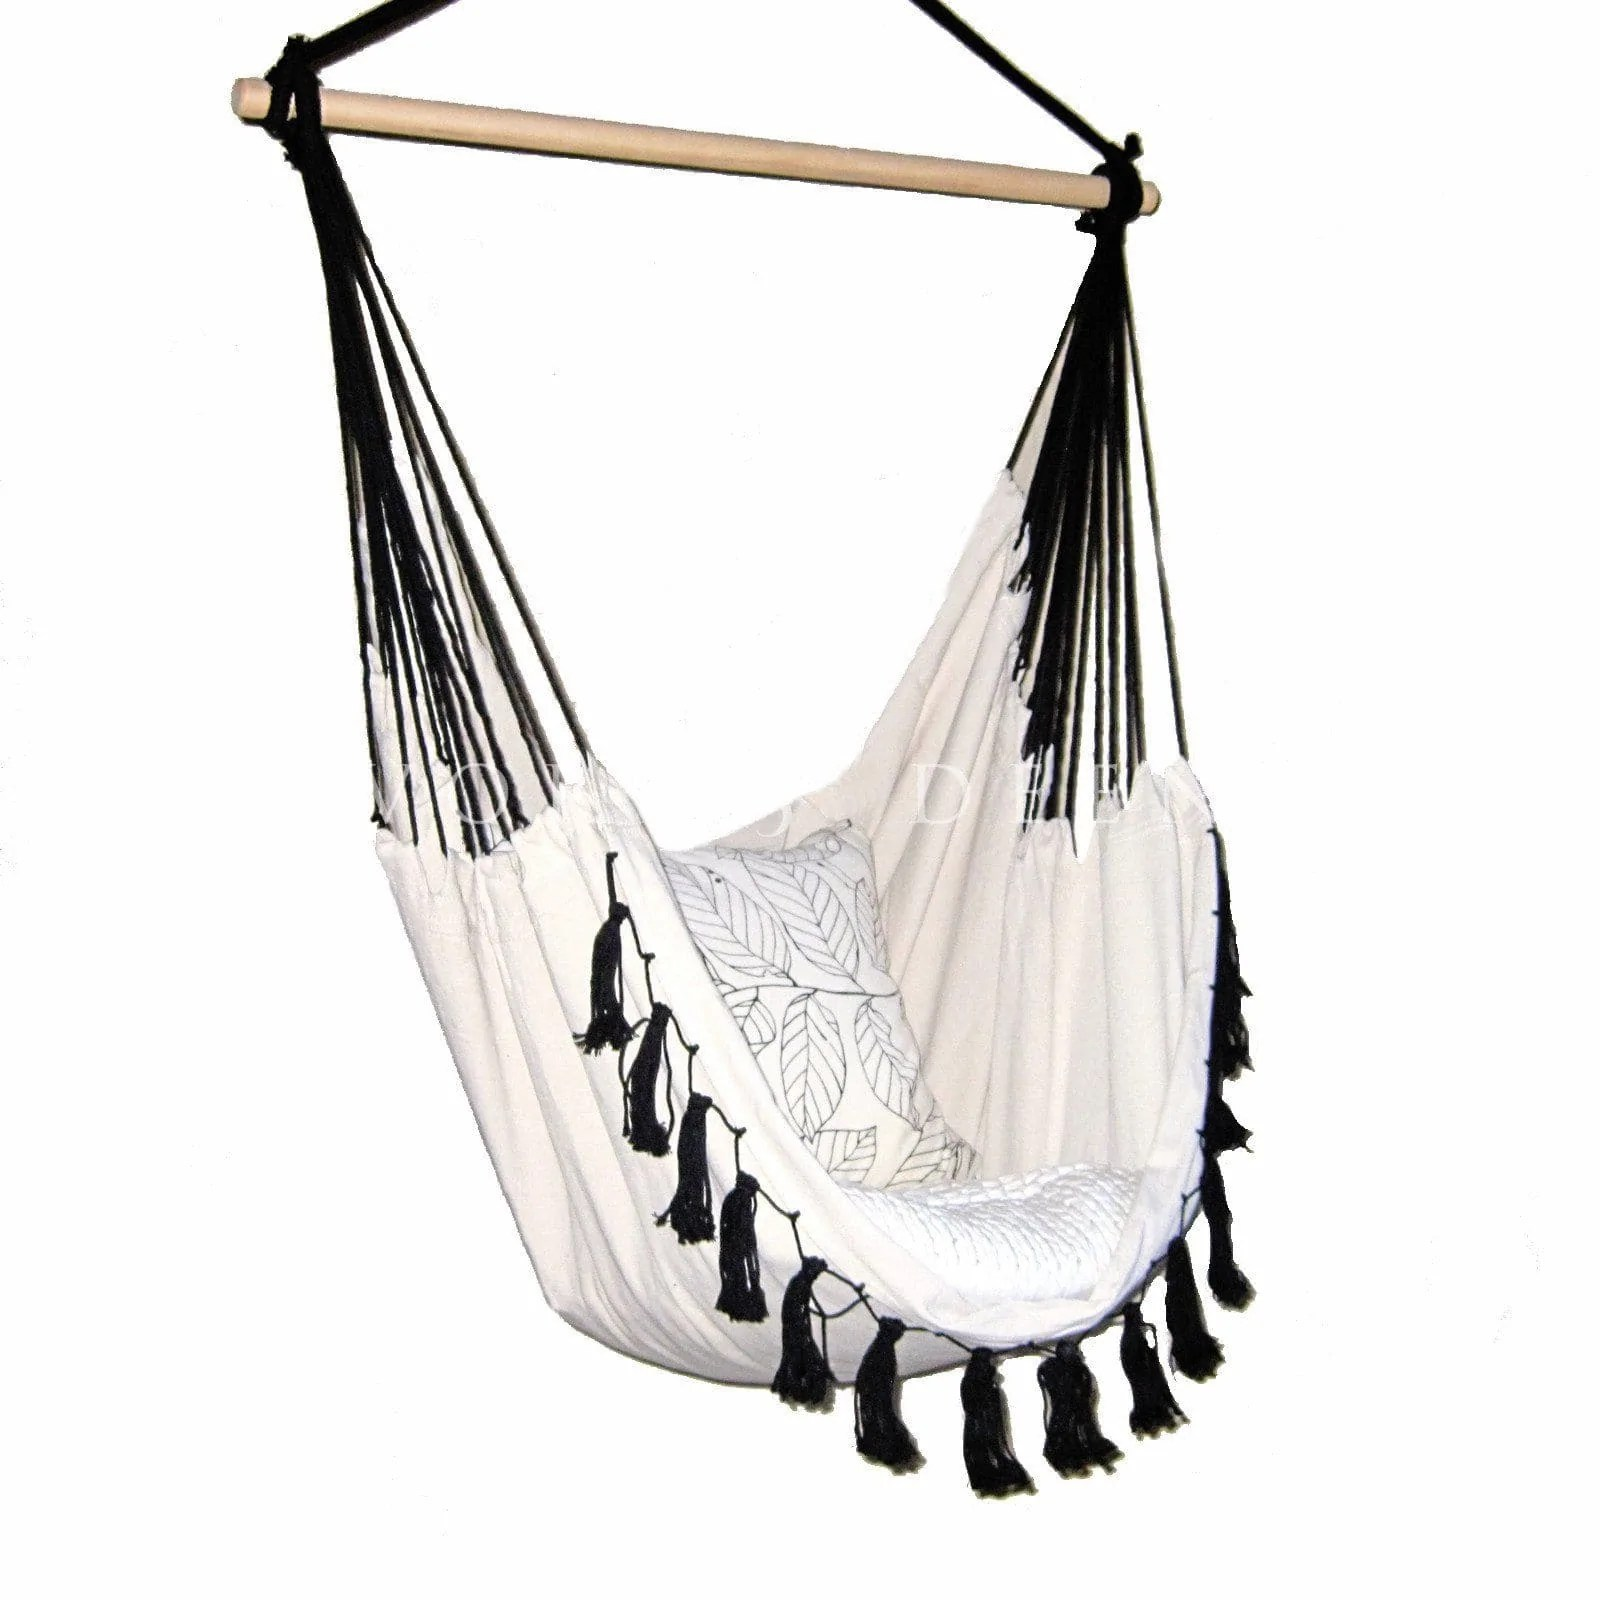 Black Hanging Chair Hammock Chair Soho Cream With Tassels Ivory And Deene